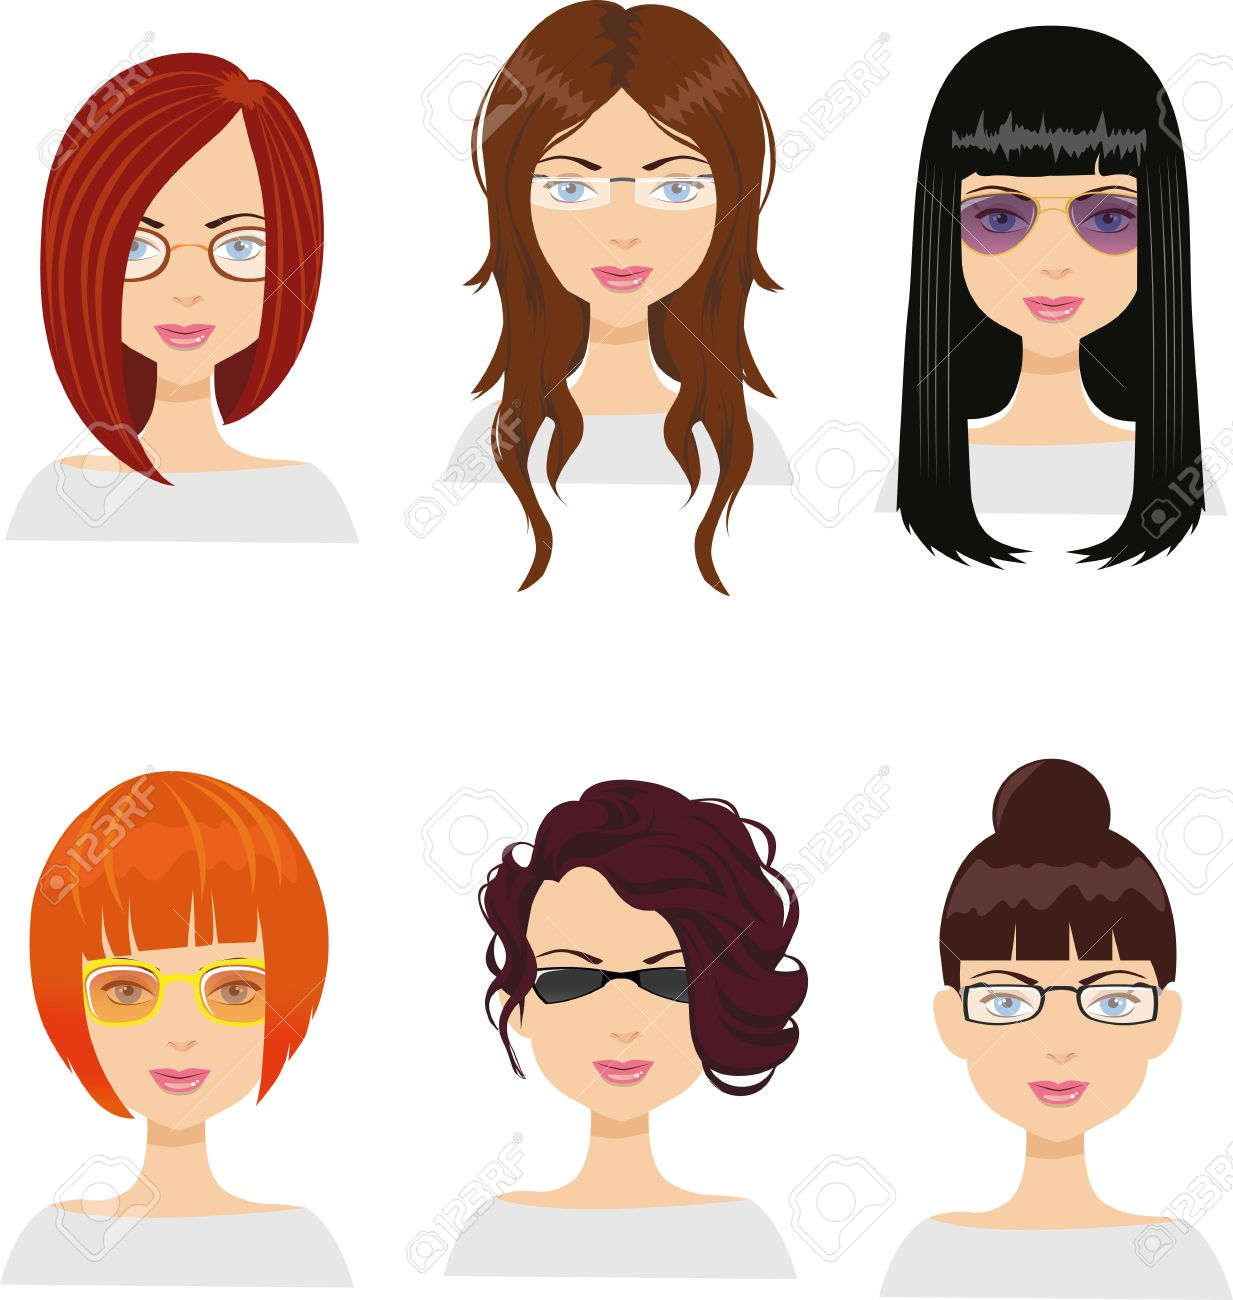 Girl Avatars With Different Haircuts And Glasses Royalty Free